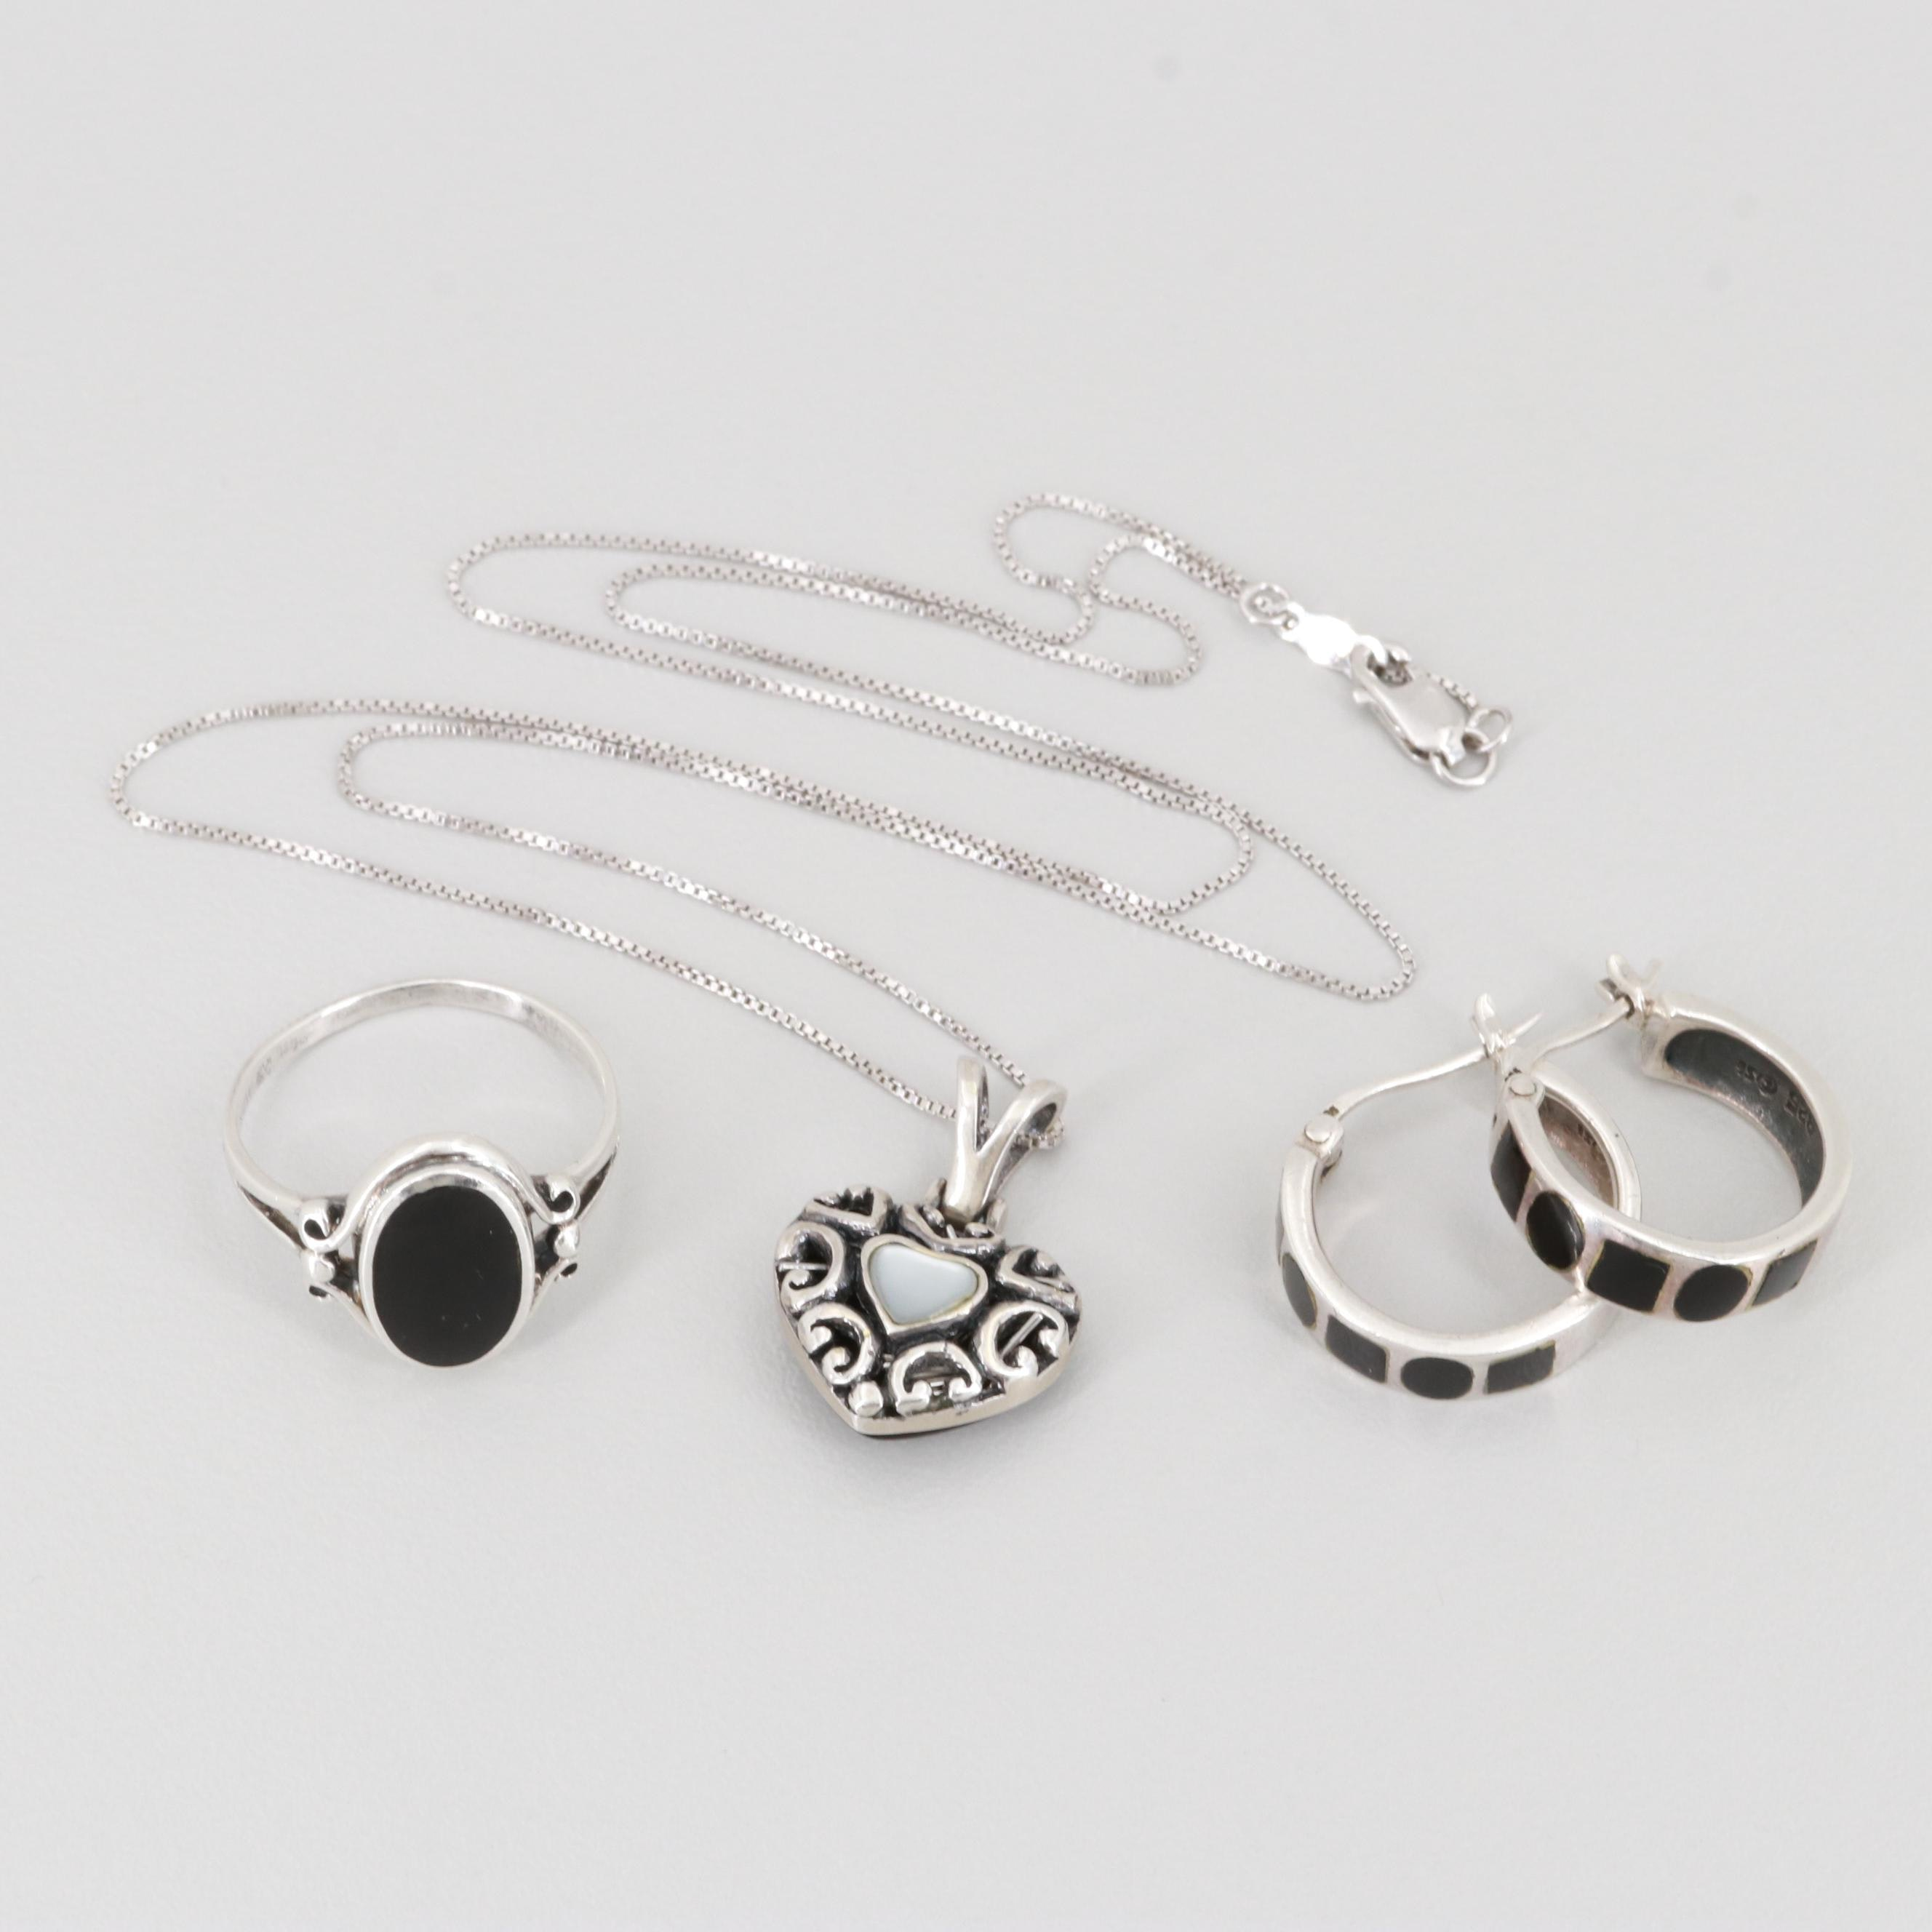 Sterling Silver Obsidian, Onyx and Mother of Pearl Necklace, Earrings, and Ring